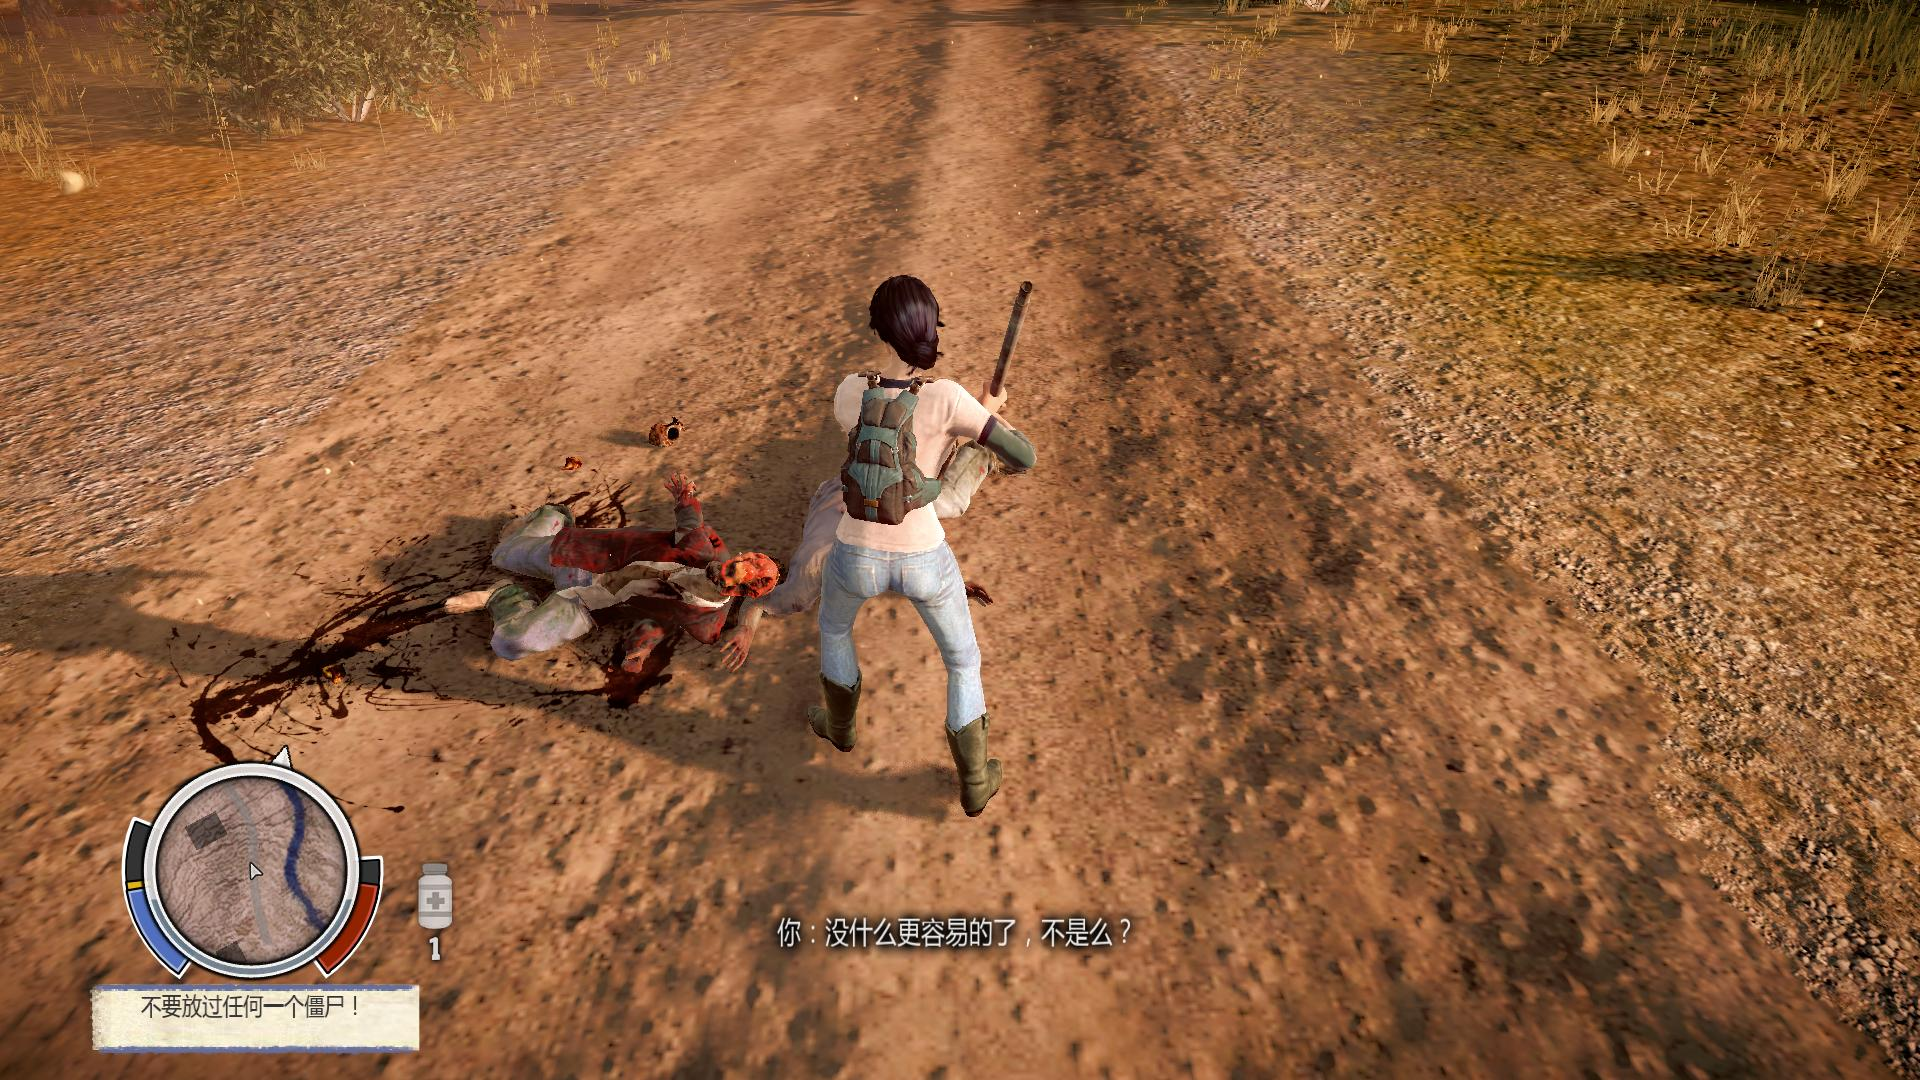 StateOfDecay 2015-04-30 15-59-15-04.jpg